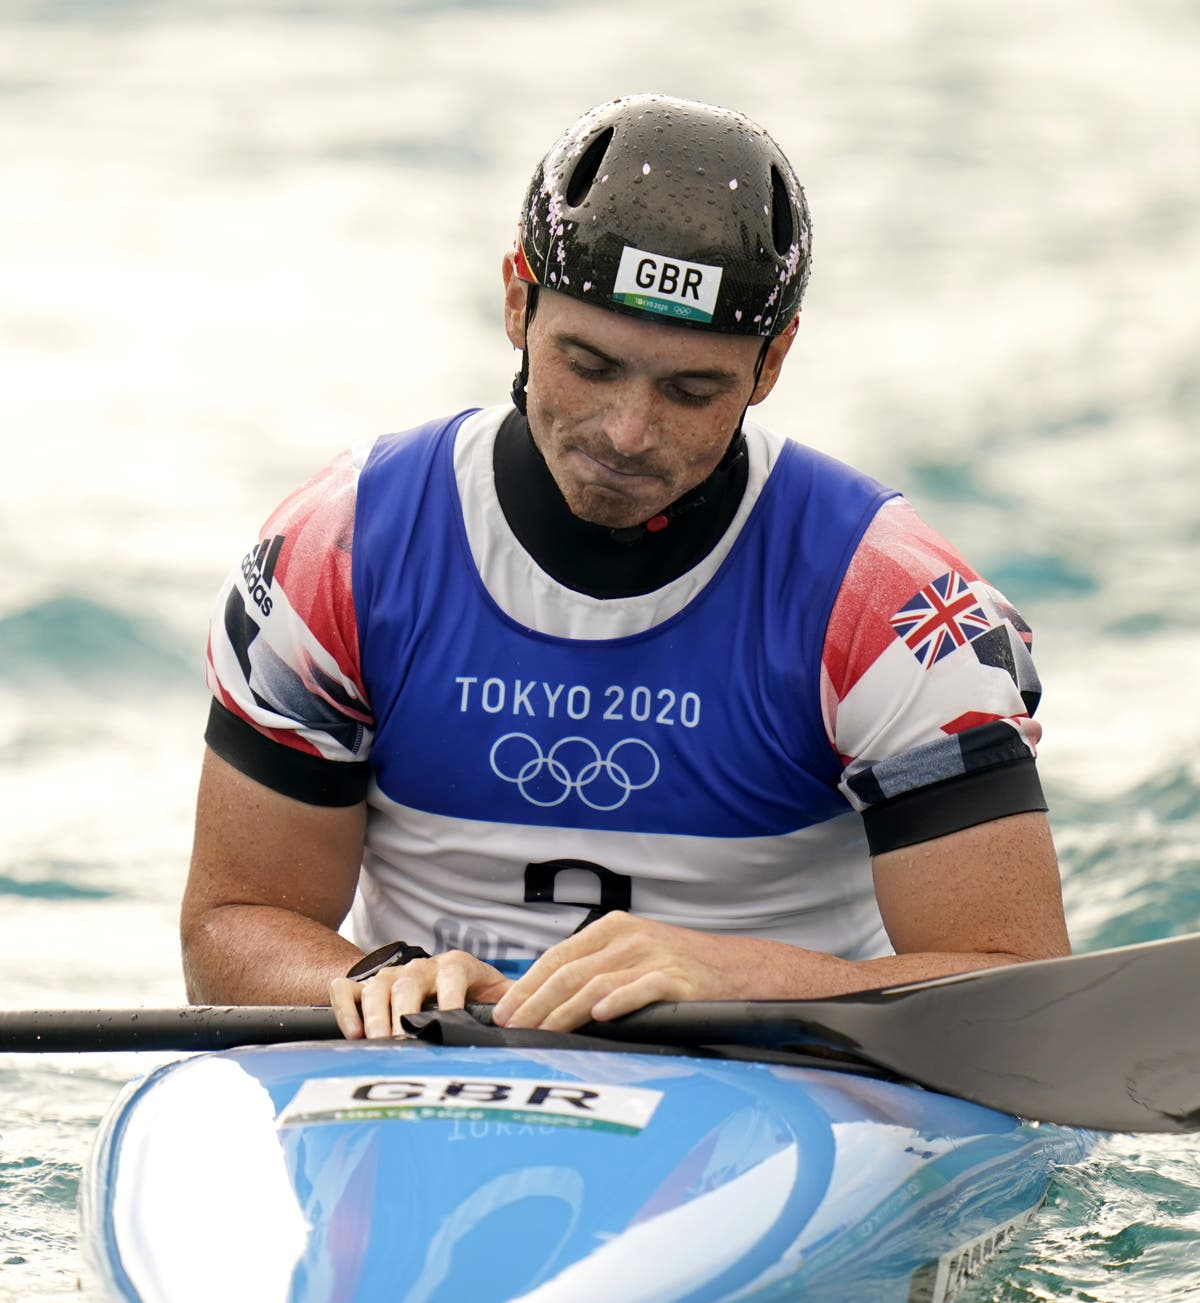 Bradley Forbes-Cryans 'absolutely thrilled' despite missing out on Olympic medal